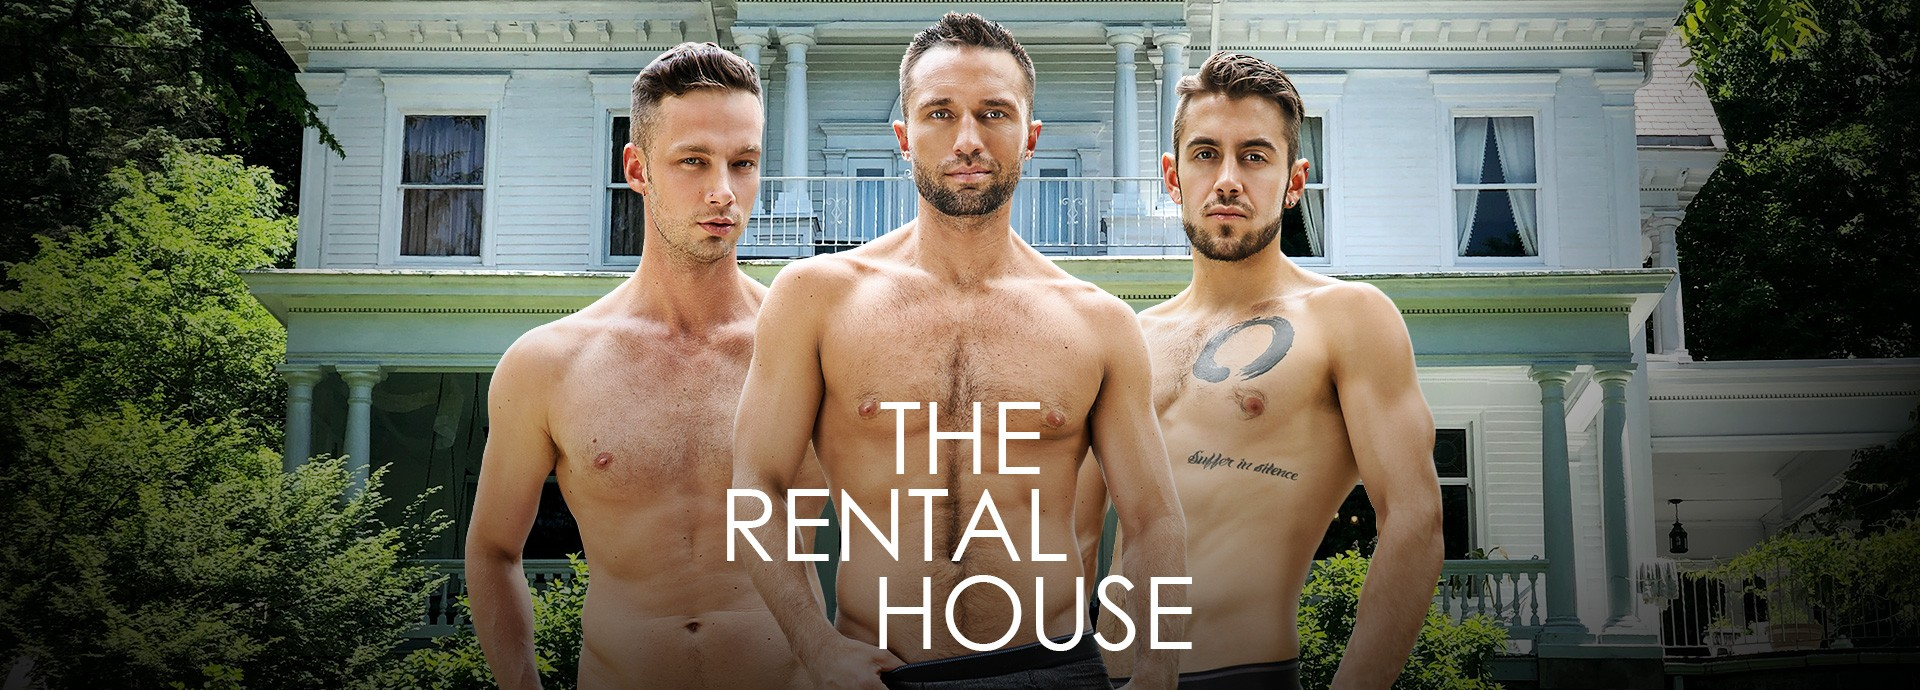 Men The Rental House